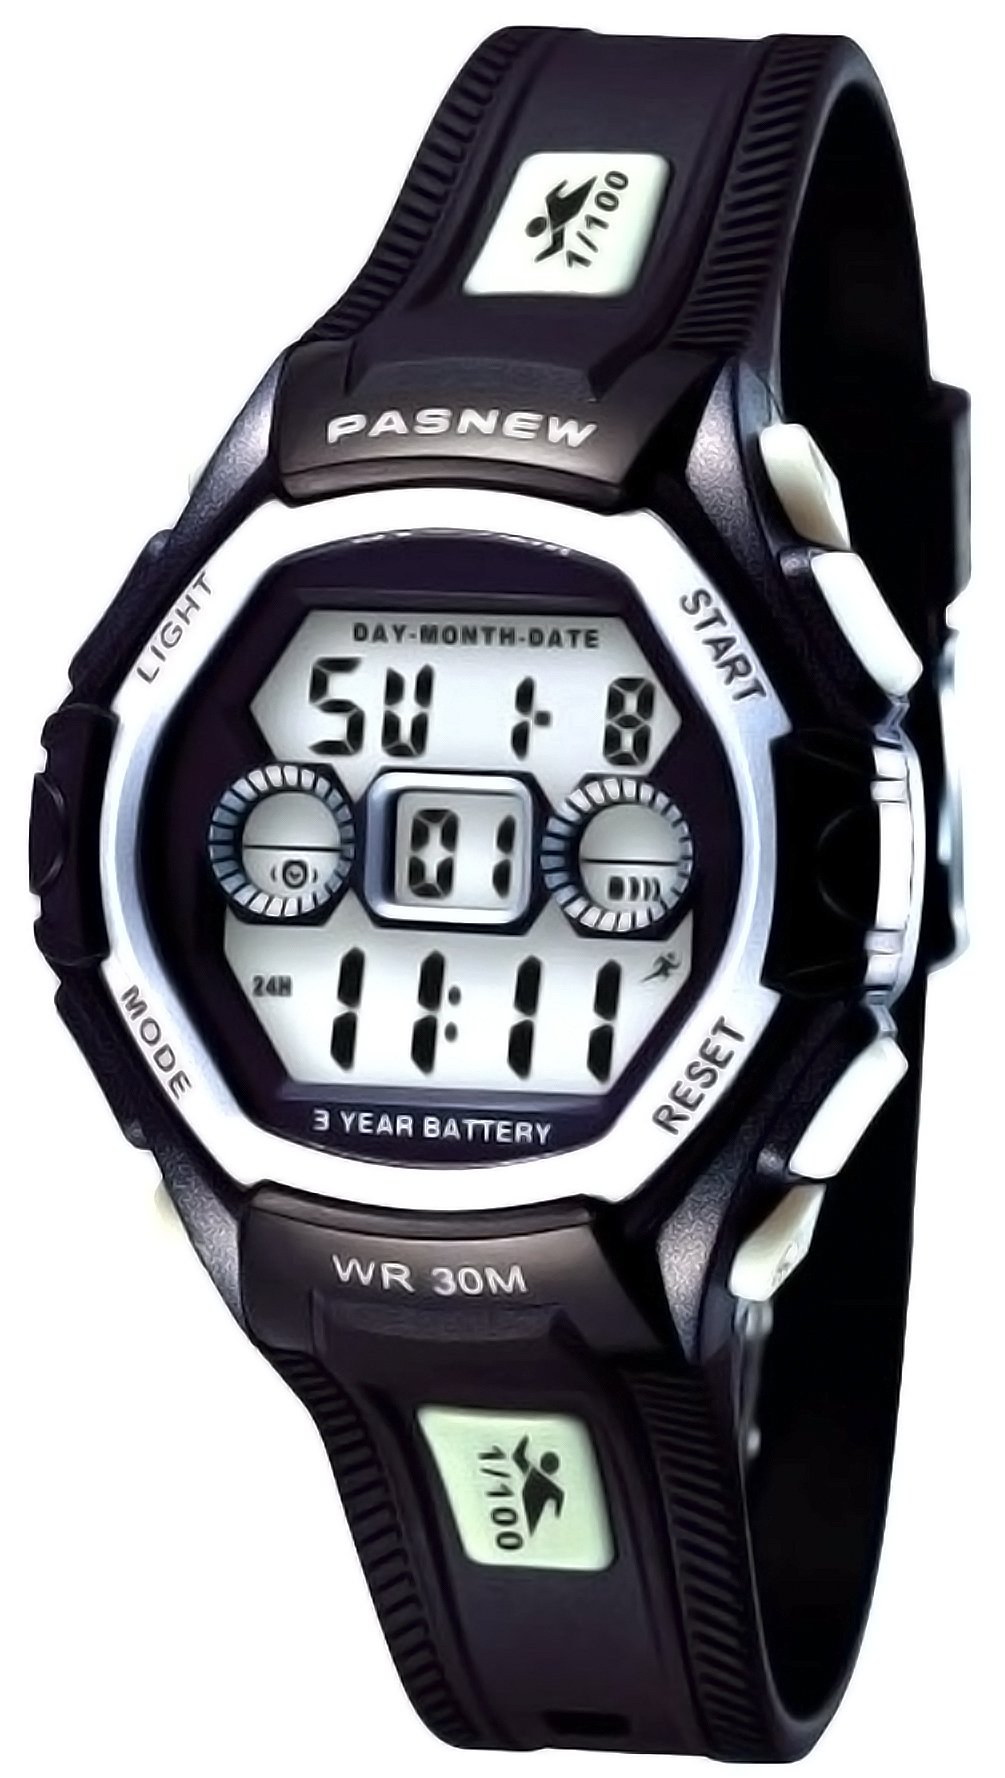 Waterproof Boys/Girls/Kids/Childrens Digital Sports Watches for 5-12 Years Old (Black-White)